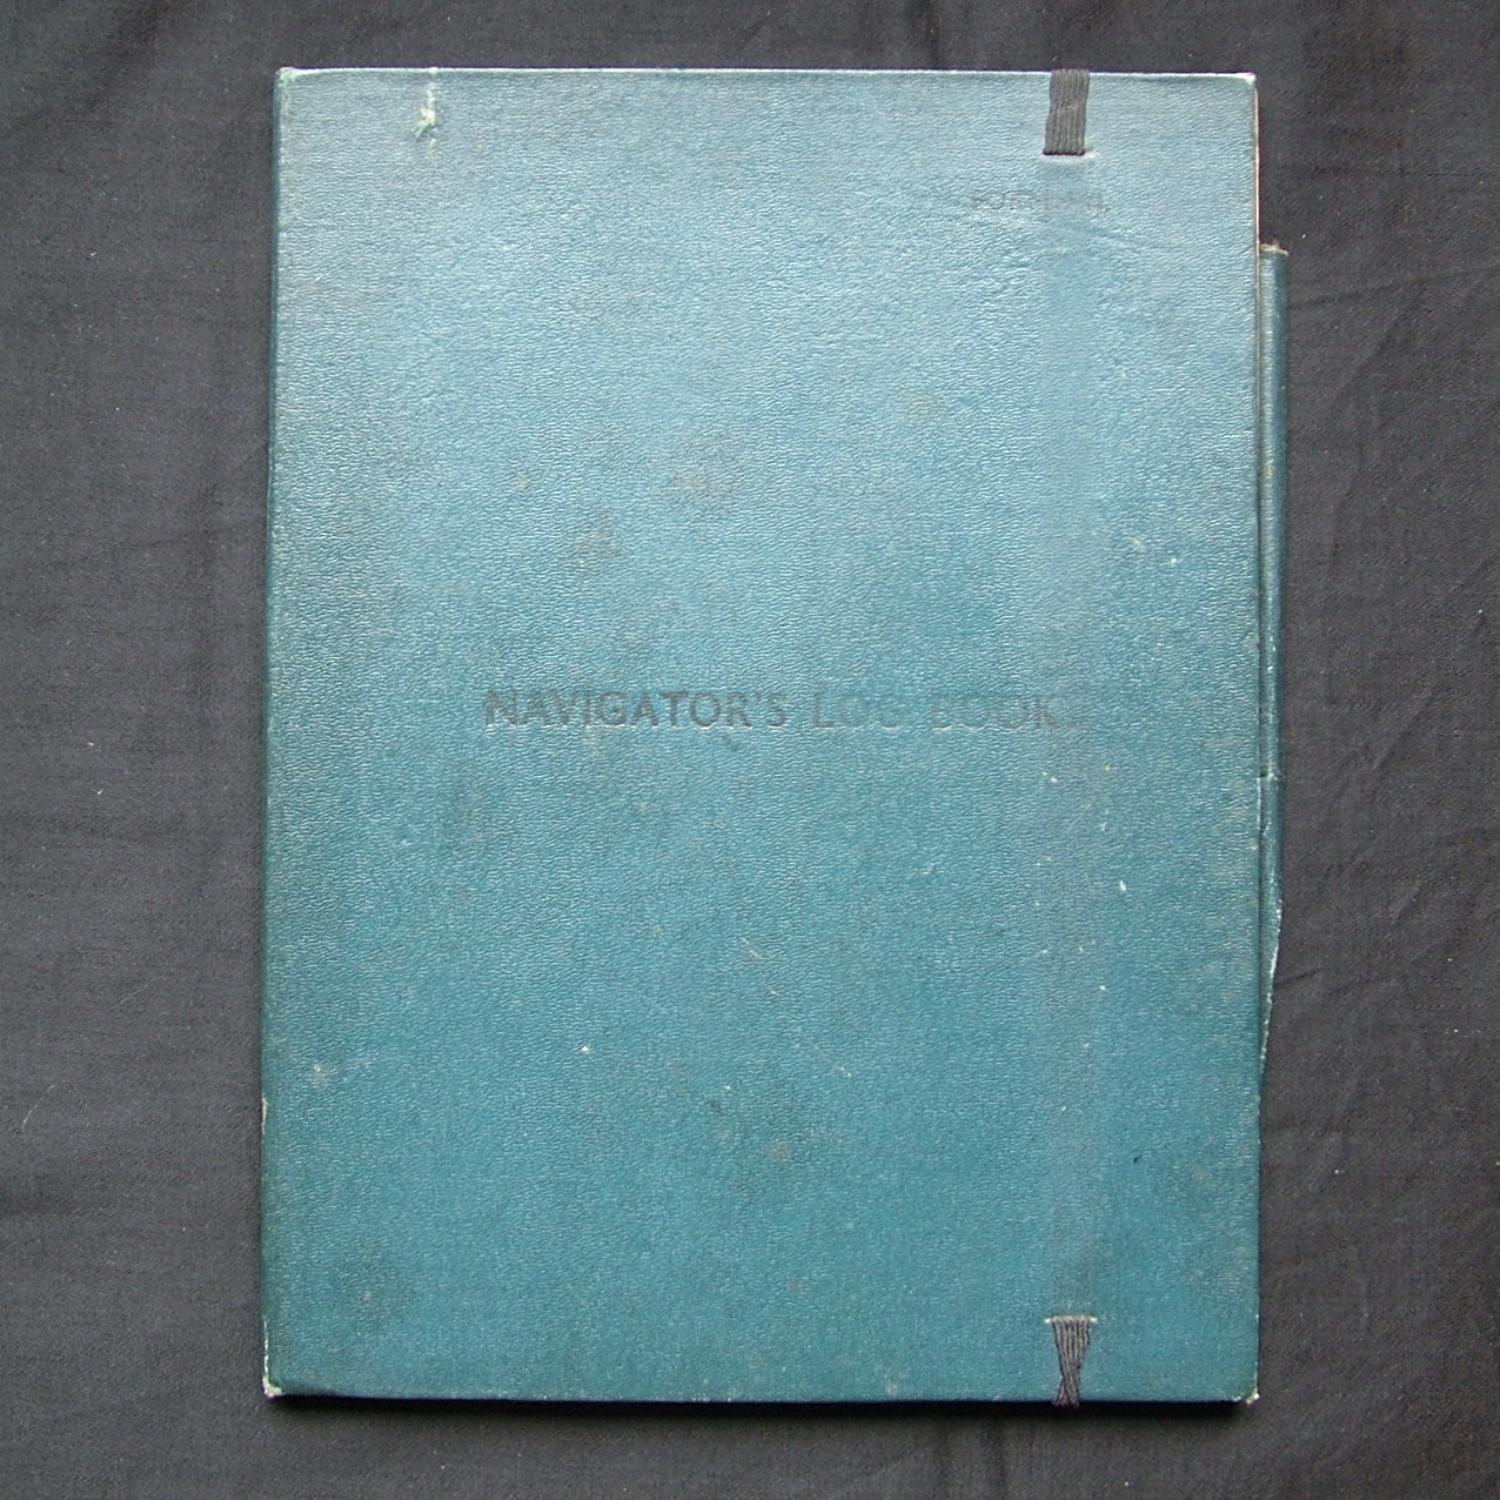 RAF Navigator's log book folder